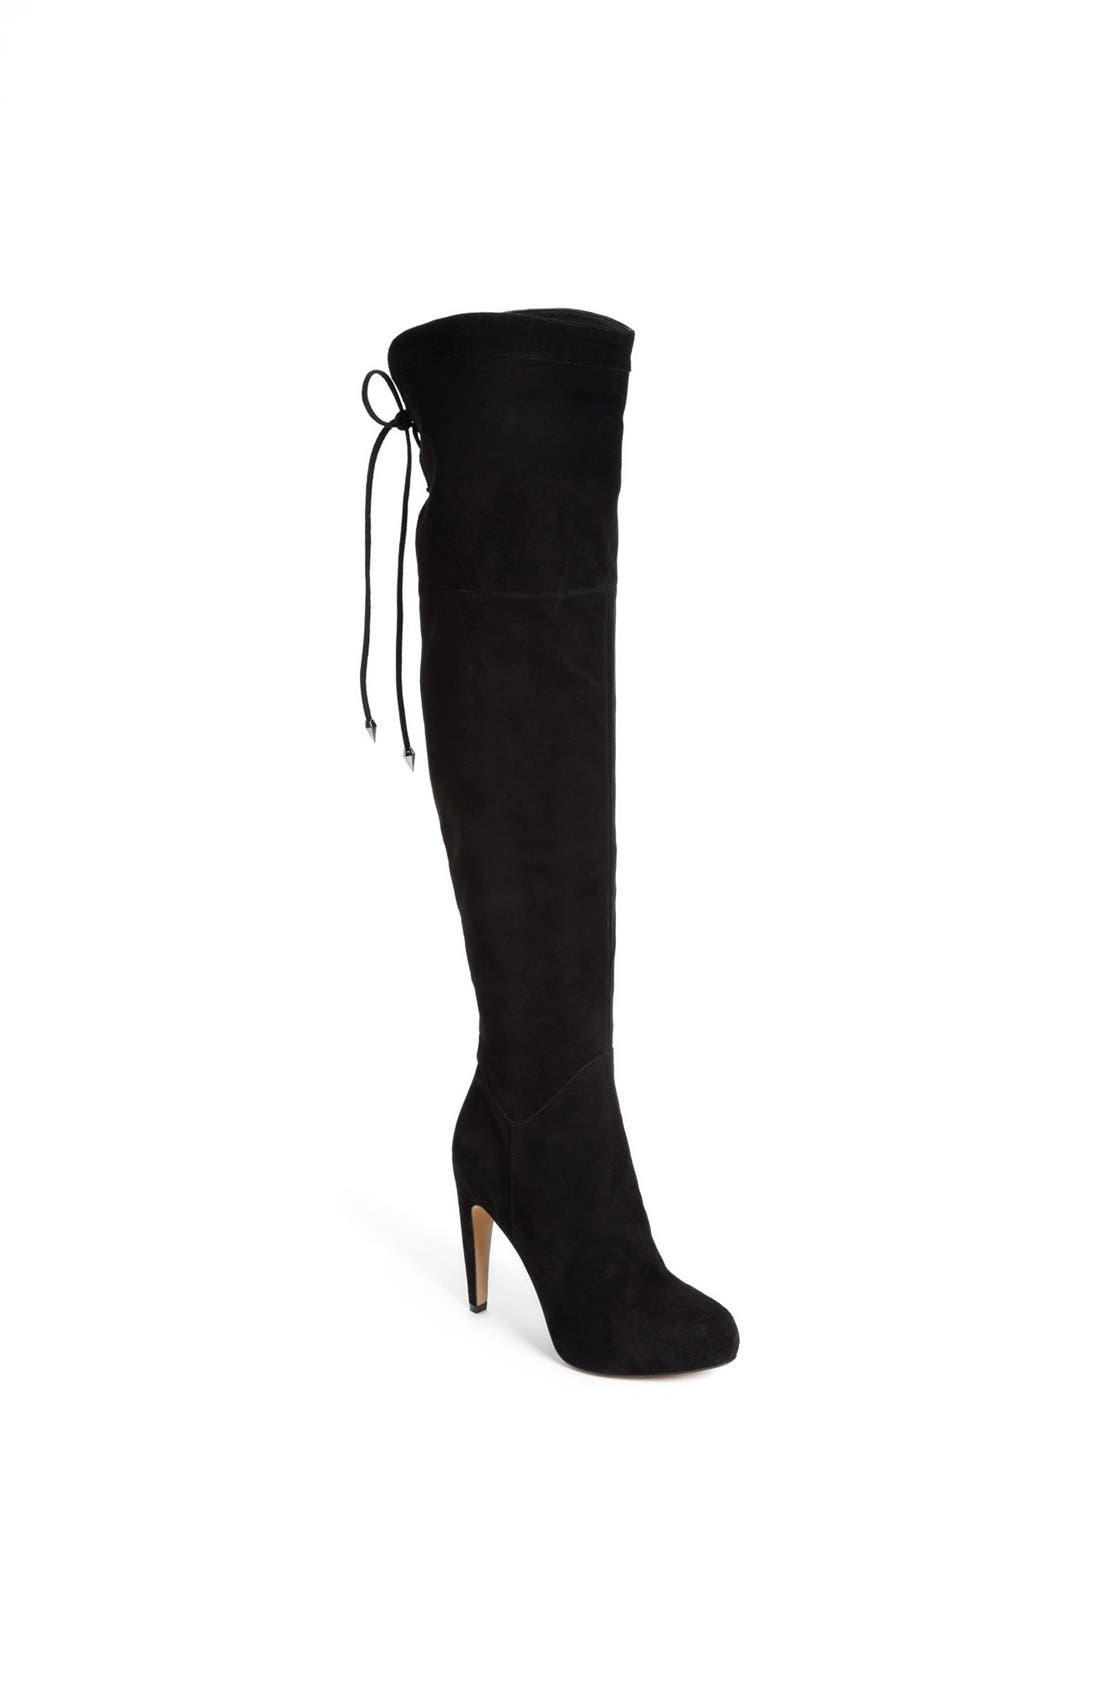 'Kayla' Over the Knee Boot,                             Main thumbnail 1, color,                             Black Suede